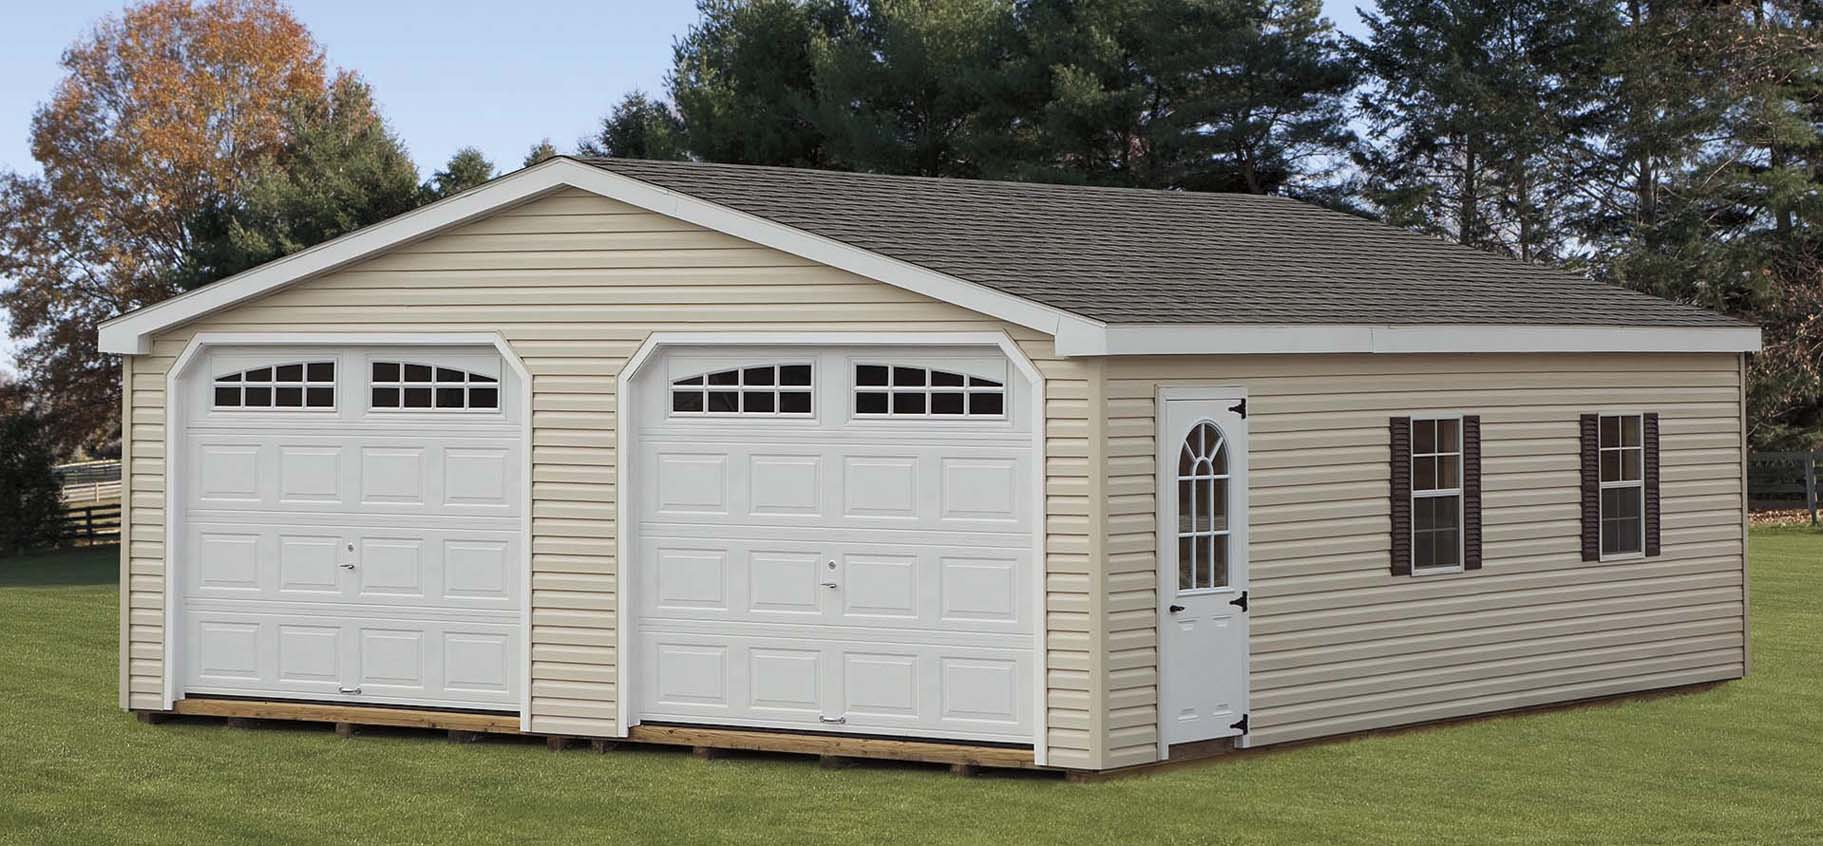 Garage apartment kits topsider prefab garages and garage Mobile home garage kits